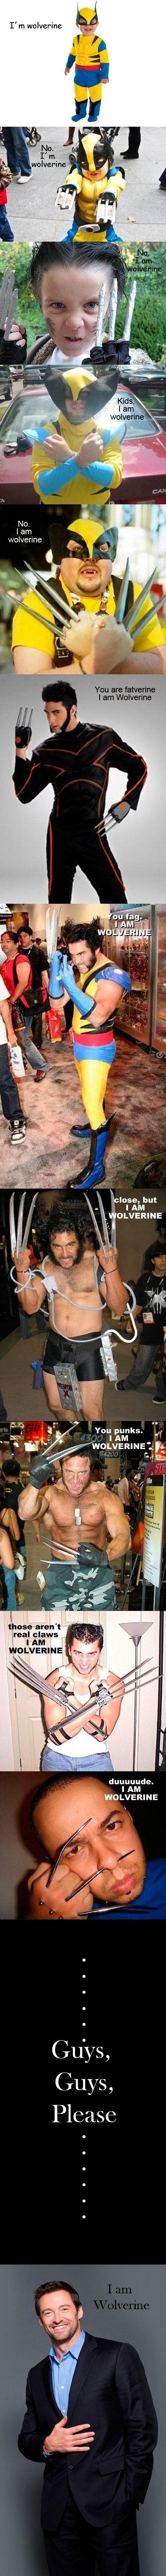 I Am Wolverine - The Wolverine Meme